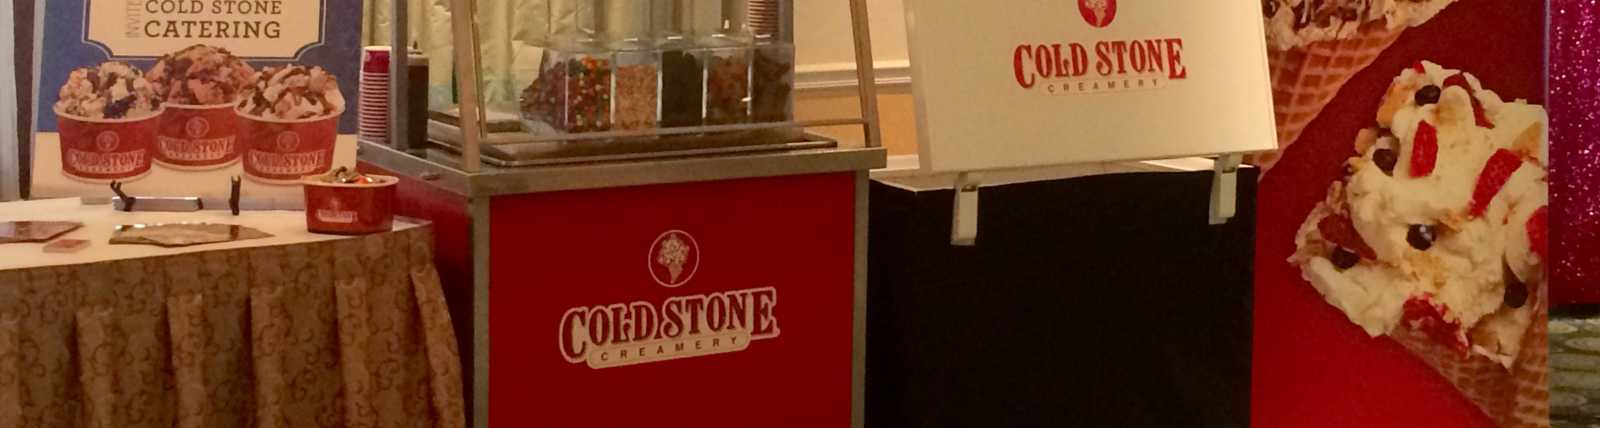 Cold Stone Creamery & Catering